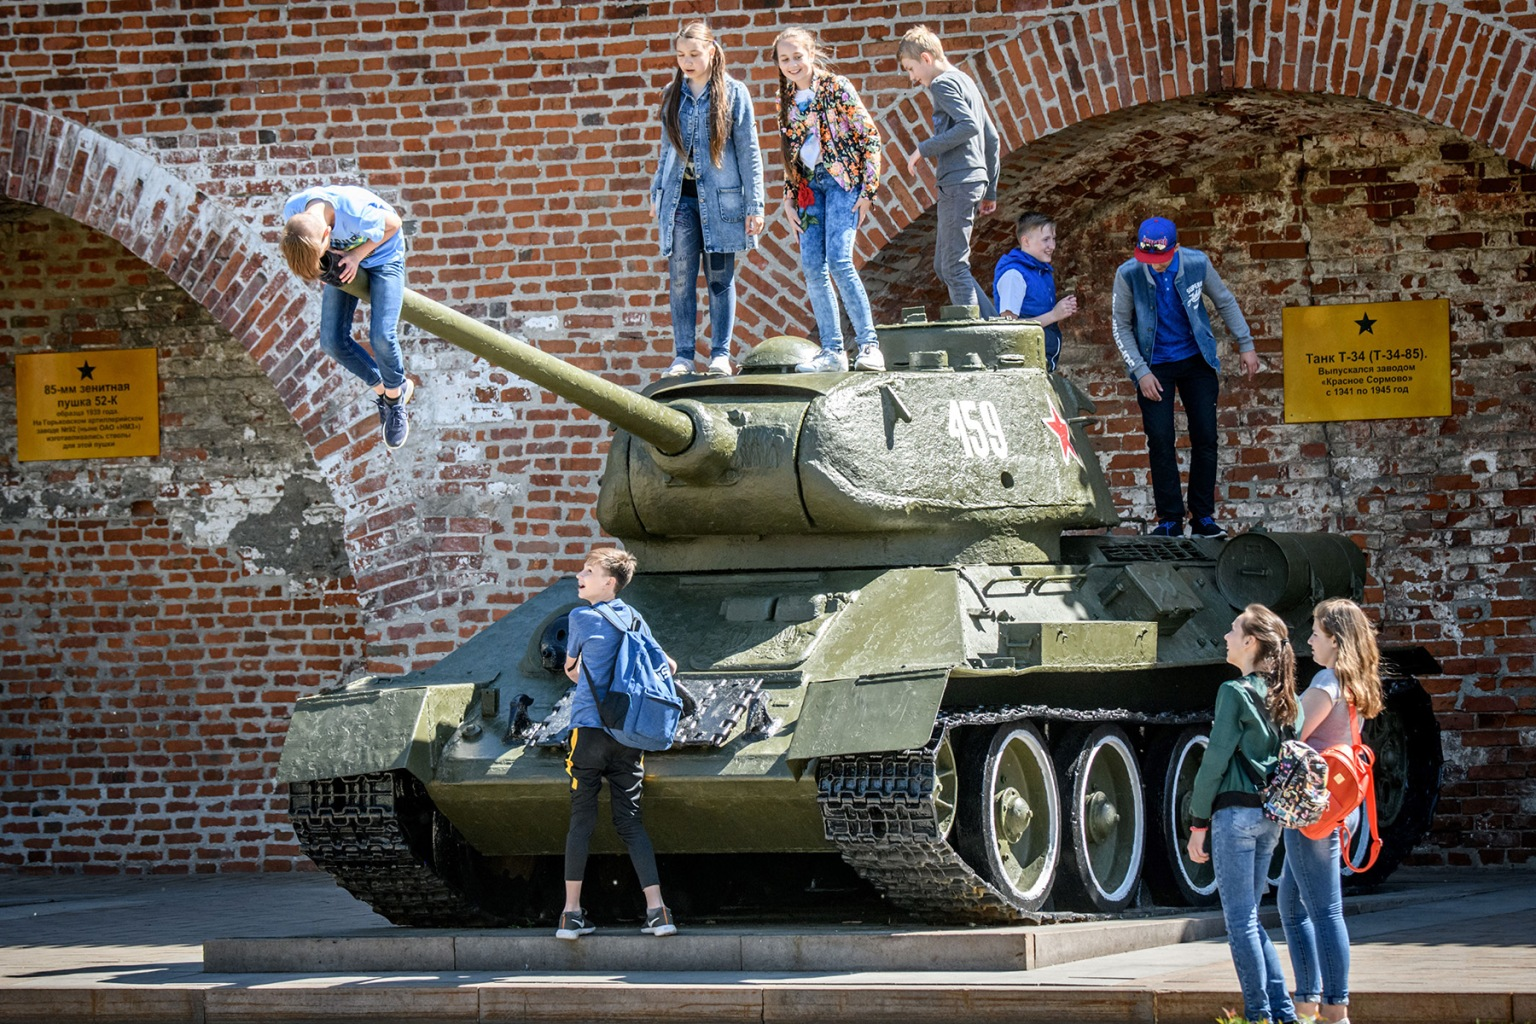 Children play atop a Soviet T-34 tank at a military museum in Nizhny Novgorod, Russia, on May 21. MLADEN ANTONOV/AFP/Getty Images